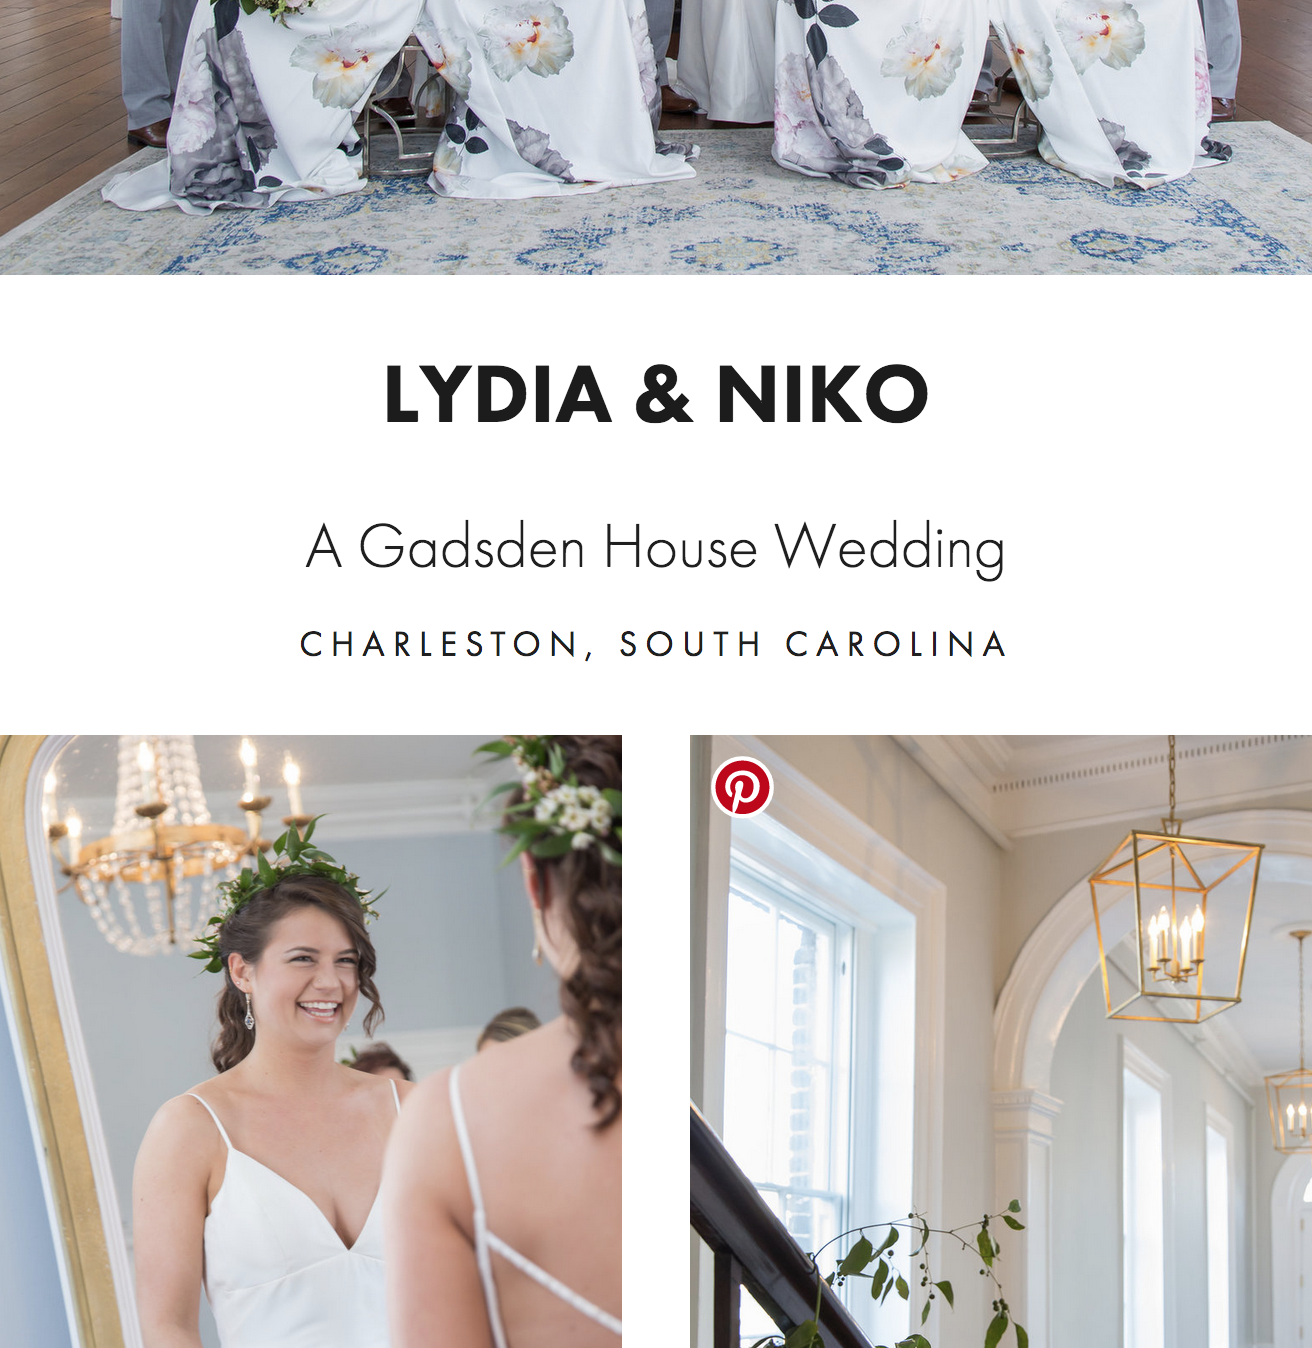 Gadsden House Wedding